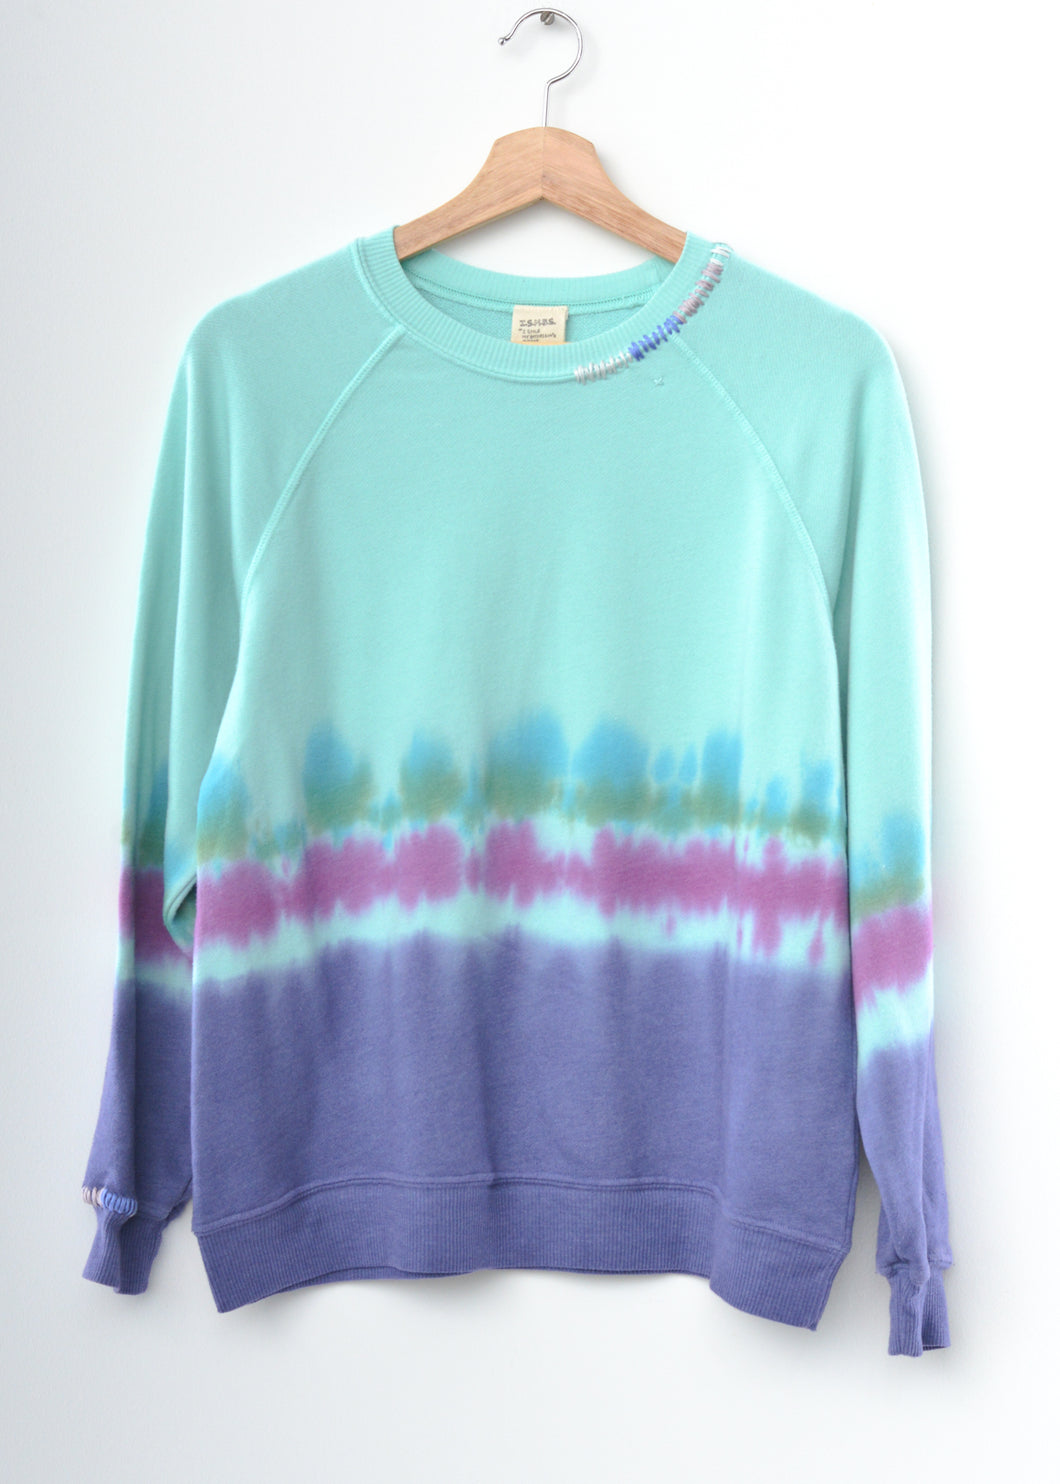 Ombre Stitched Tie Dyed Sweatshirt- Mint